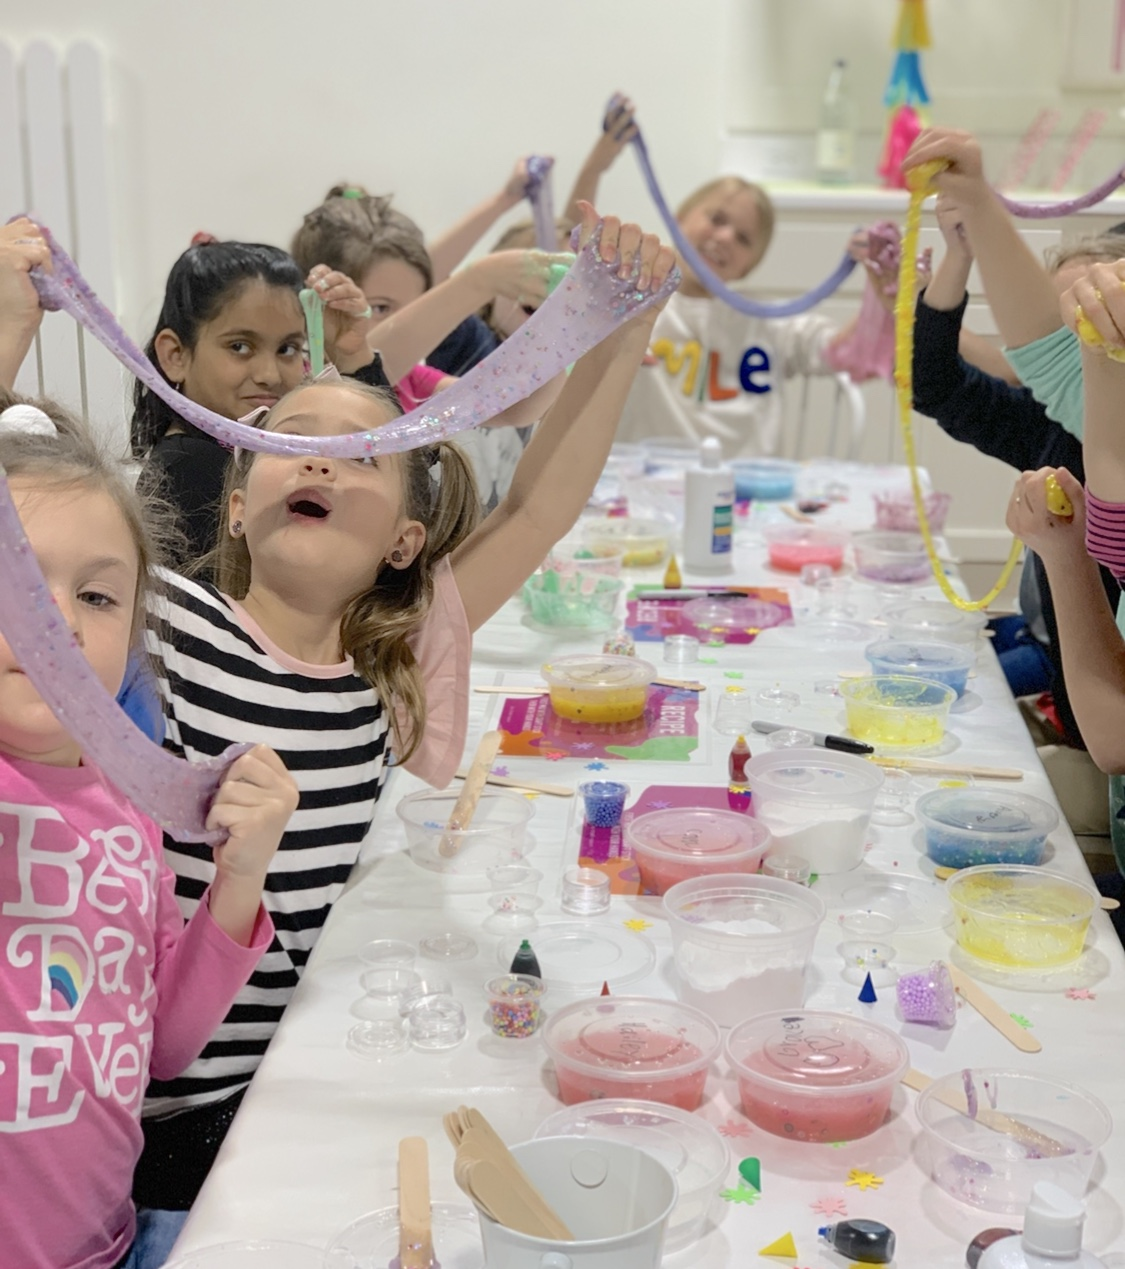 slime party birthday party messy fun